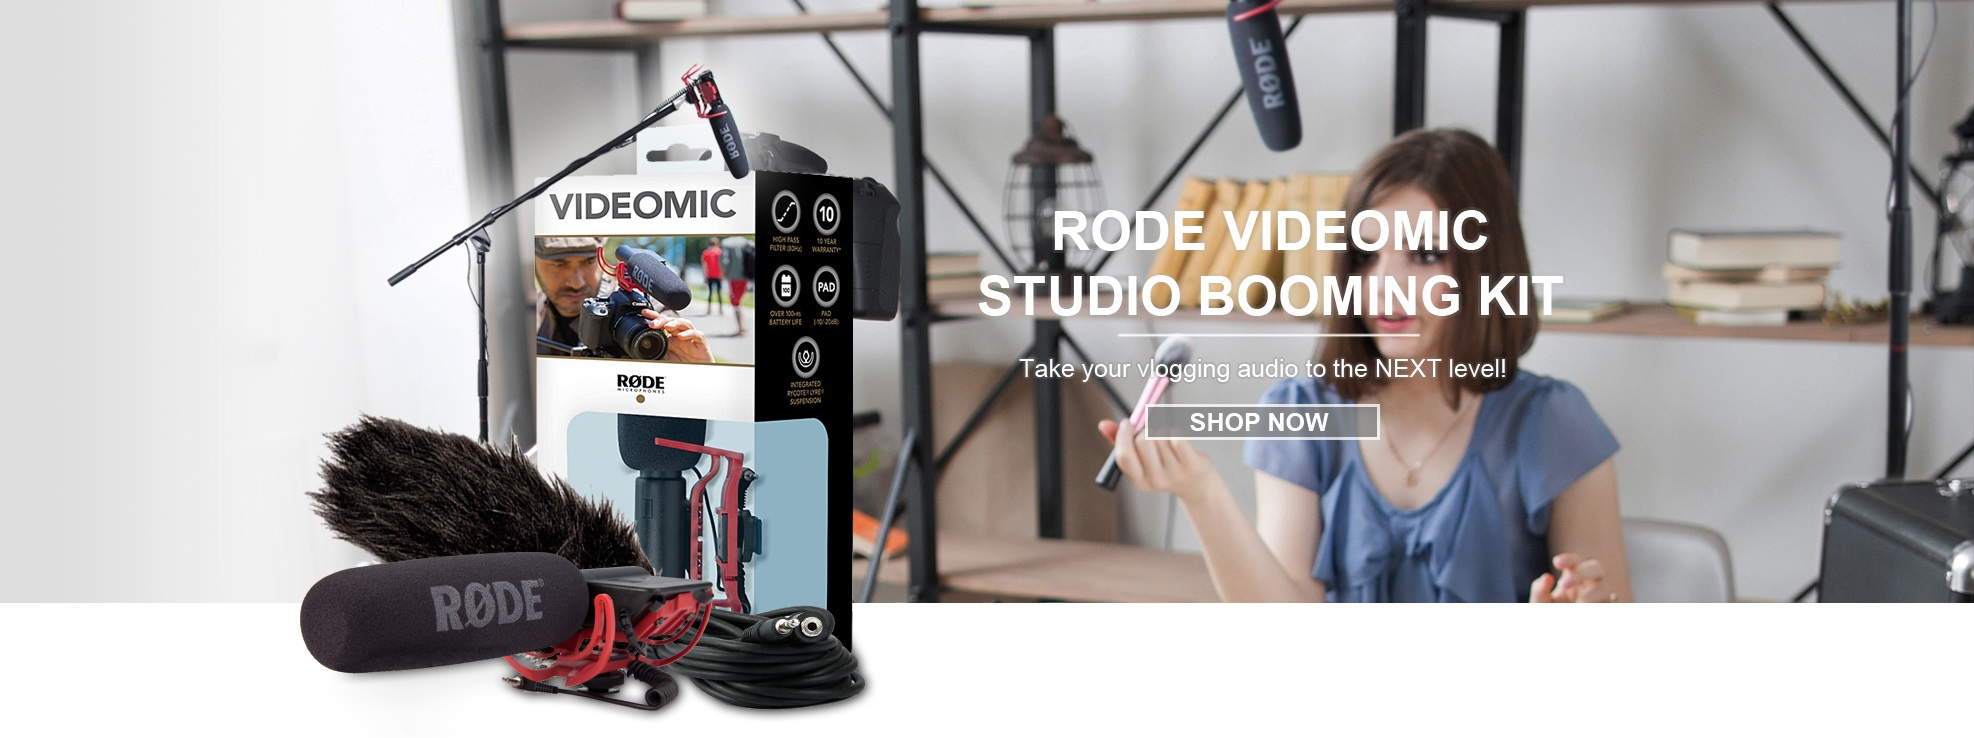 Rode VideoMic Studio Booming Kit